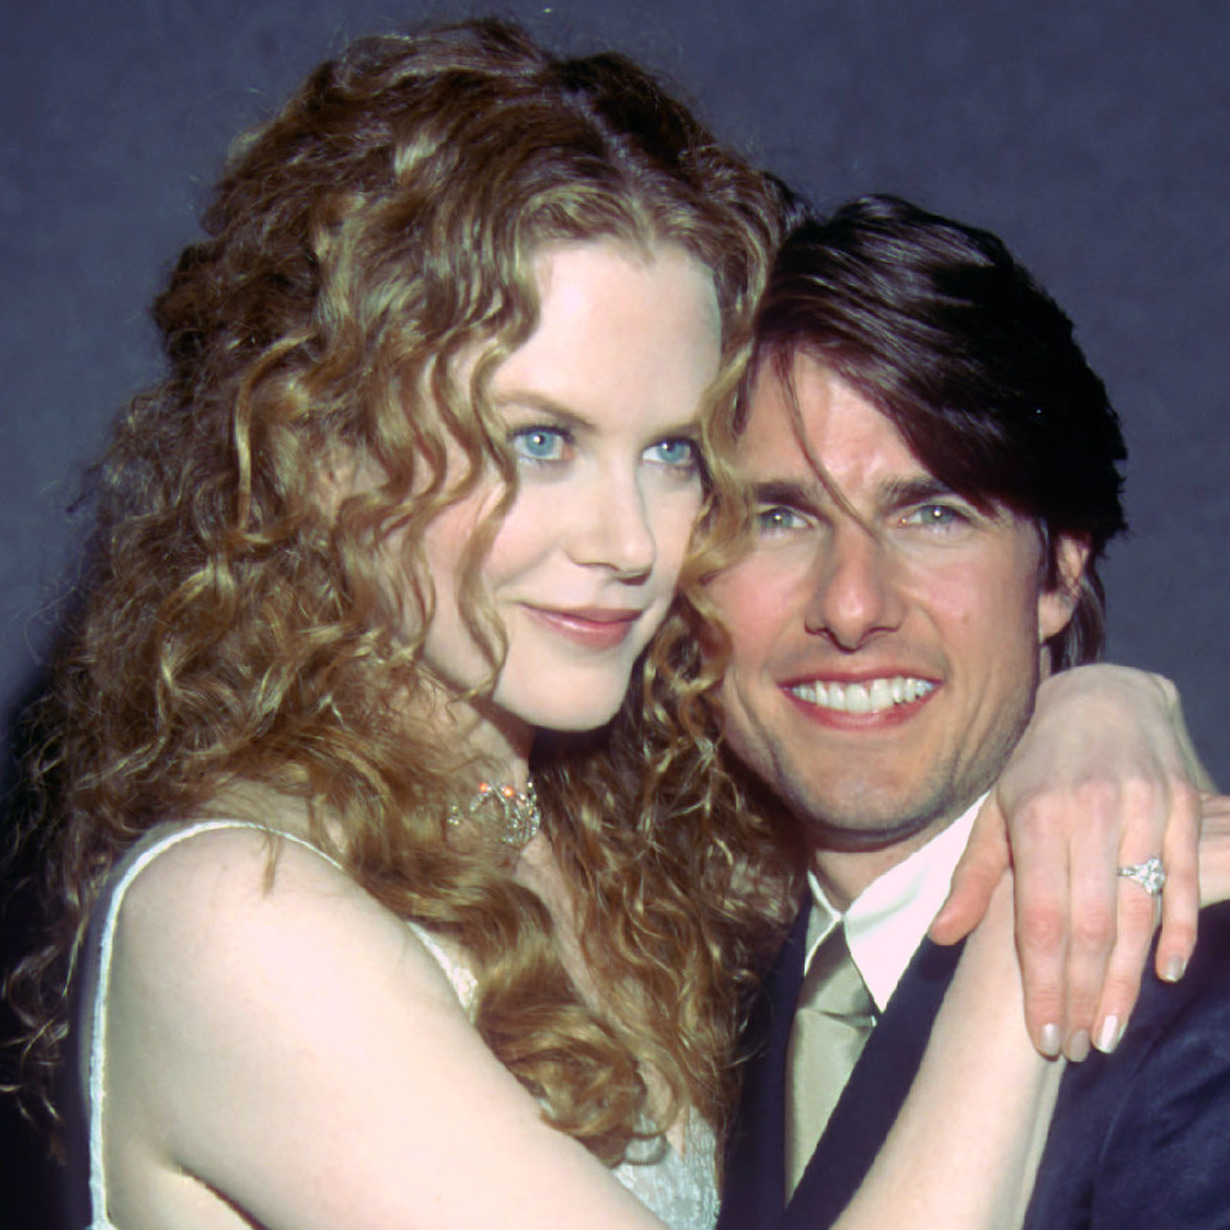 Nicole Kidman and Tom Cruise at the Writer's Guild Awards in Beverly Hills in 1998.